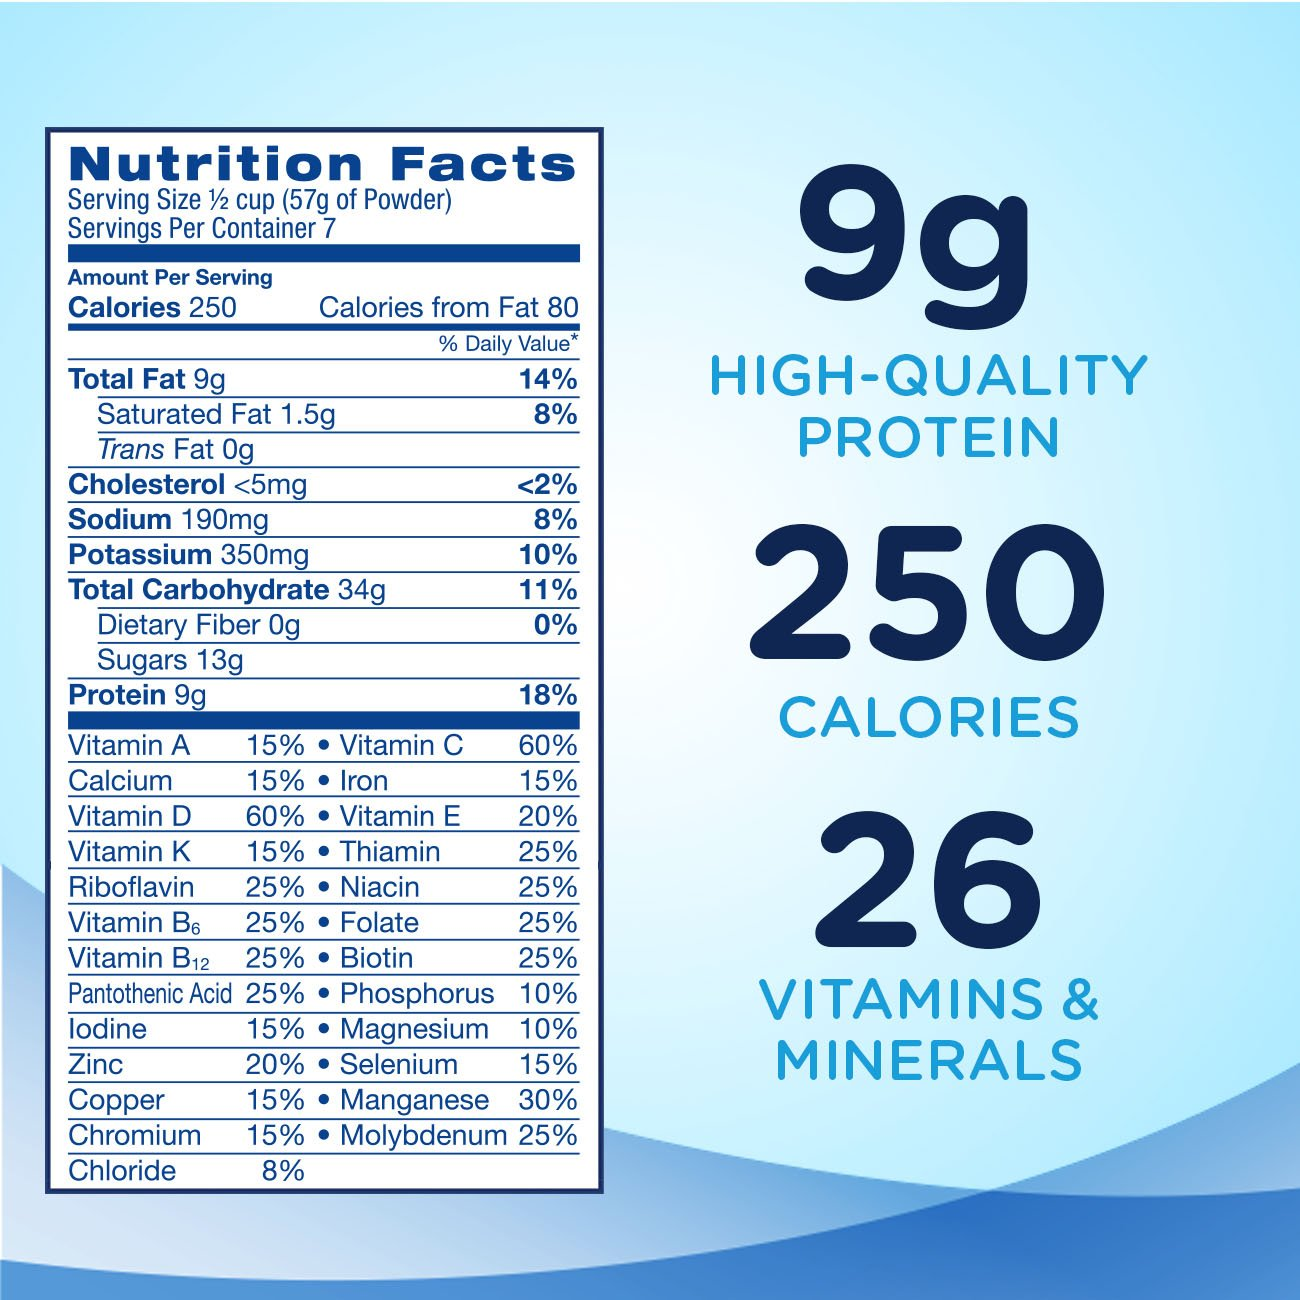 Ensure Original Nutrition Powder with 9 grams of protein, Meal Replacement, Vanilla, 14 oz, 6 count by Ensure (Image #7)